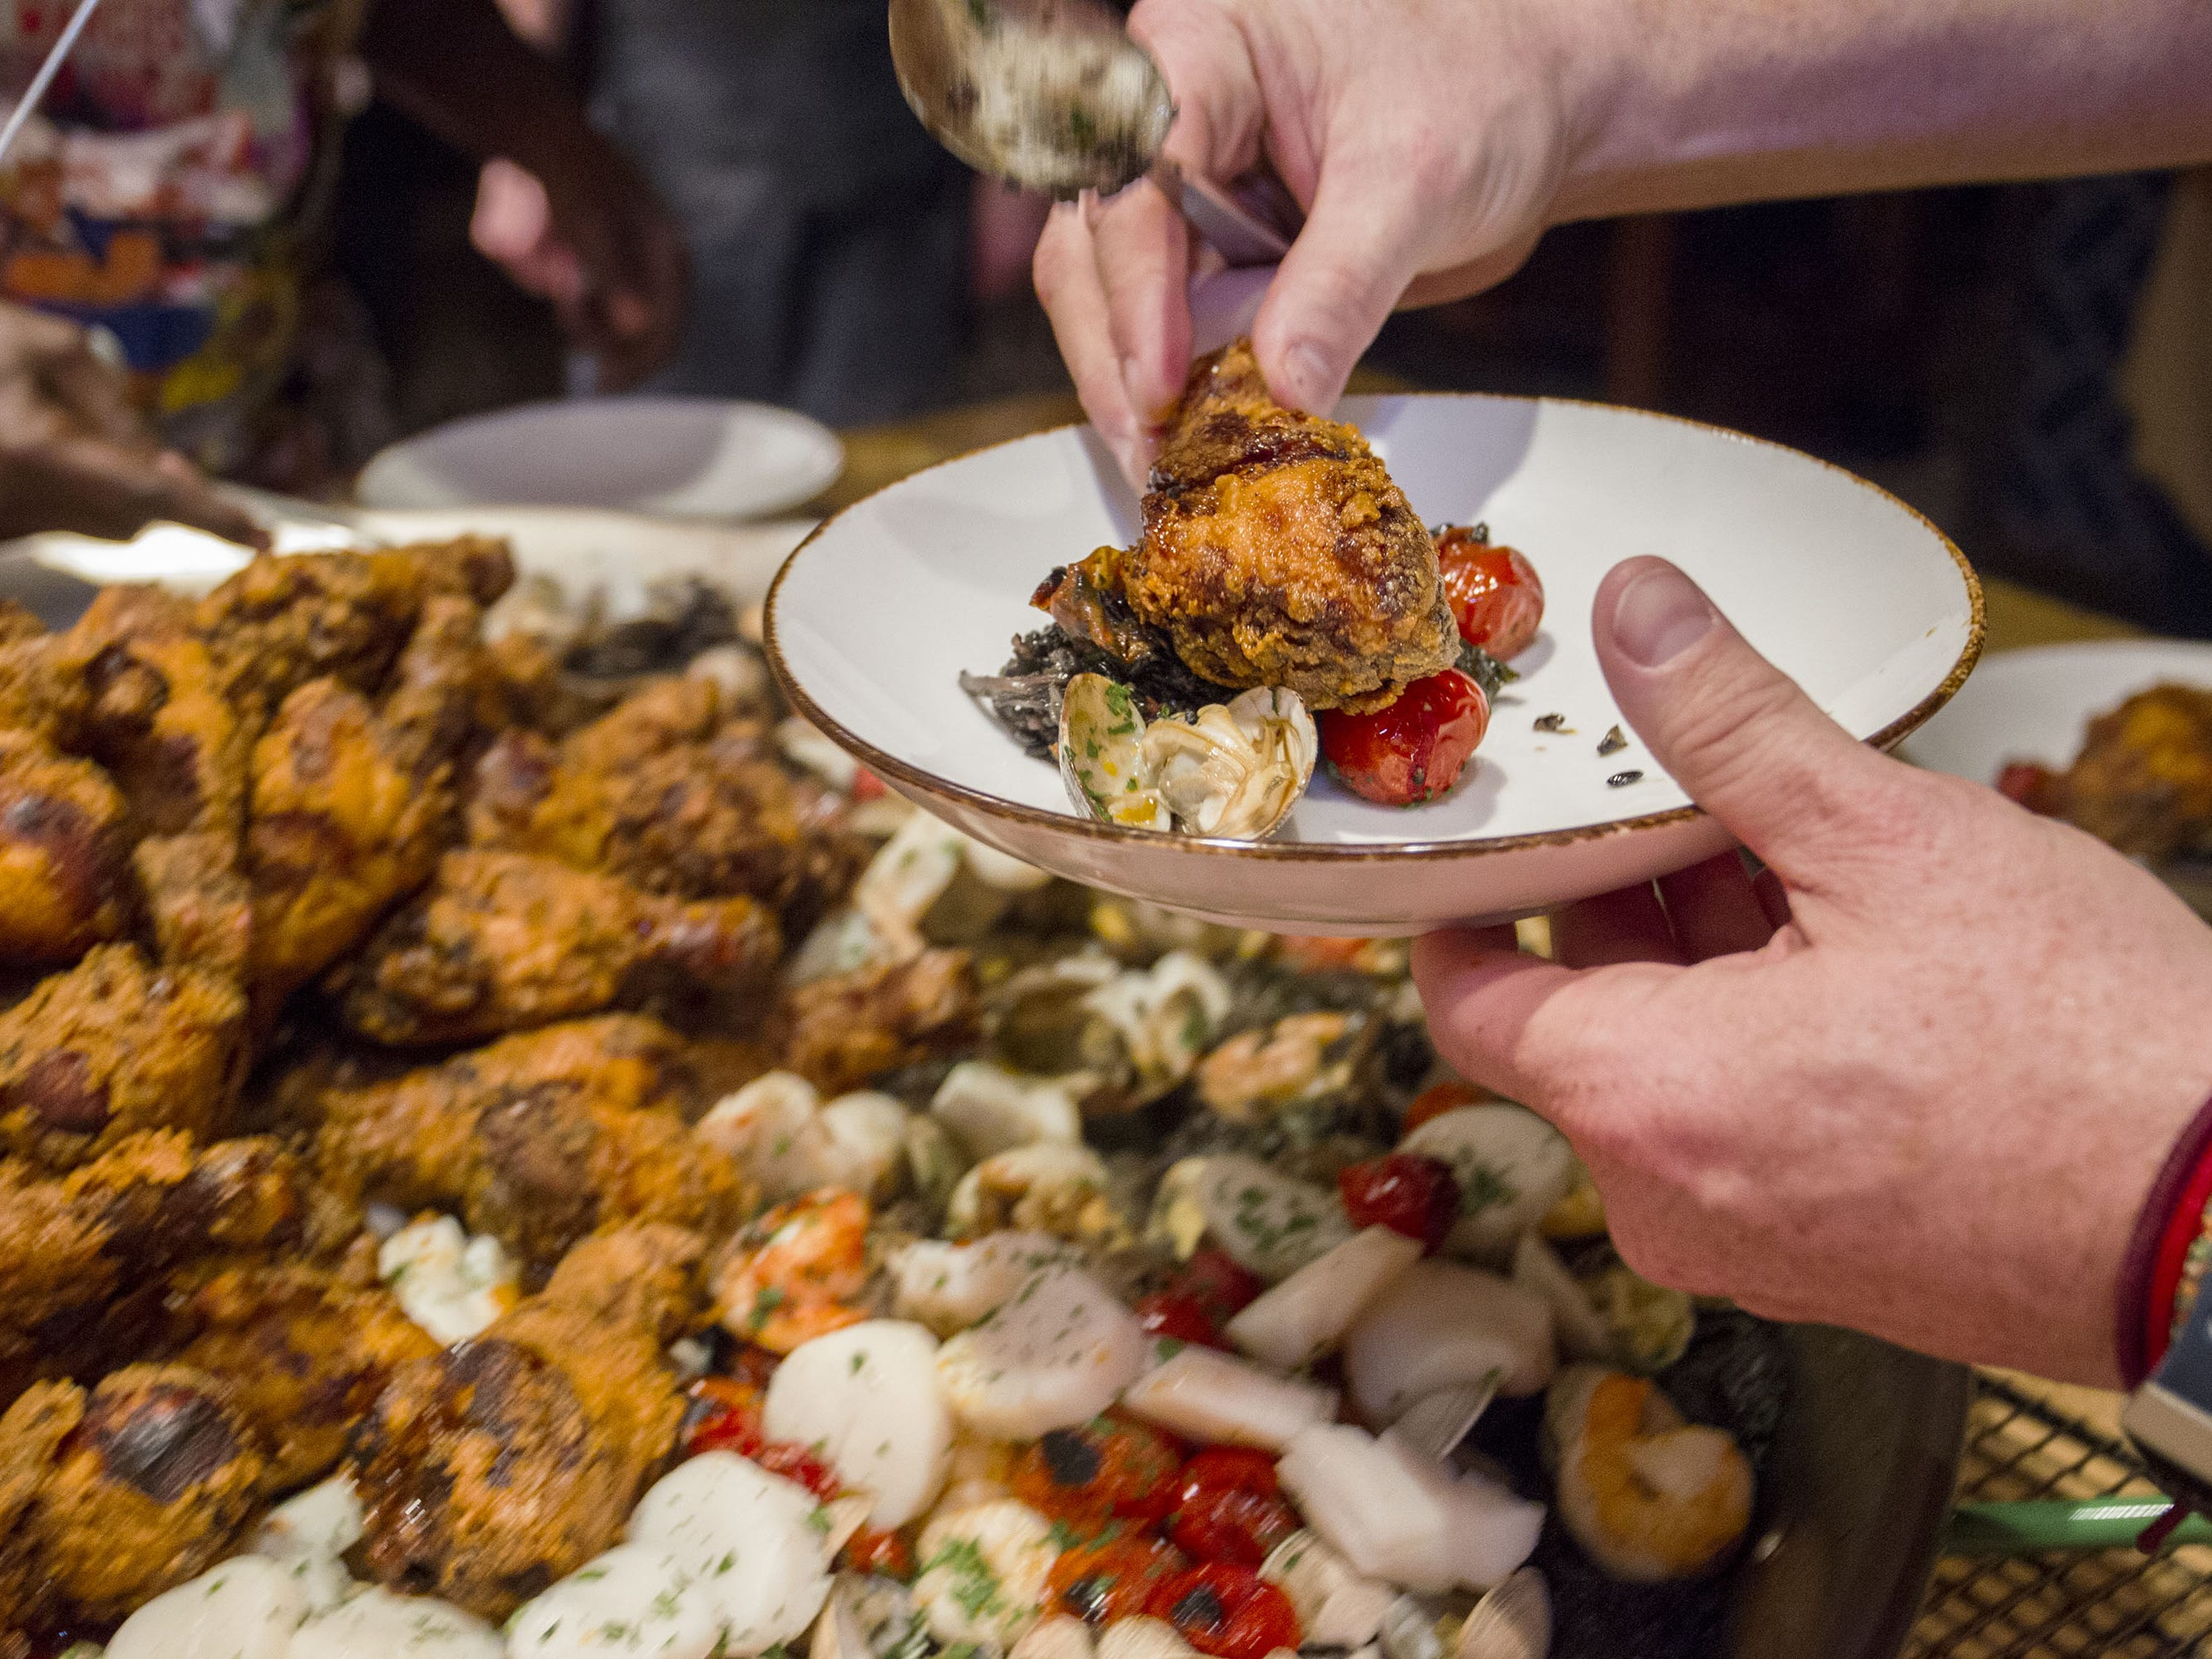 Fried chicken paella was served as the main entree to dinner guests during the exclusive kickoff dining event at Mora Italian for azcentral Wine & Food Experience.